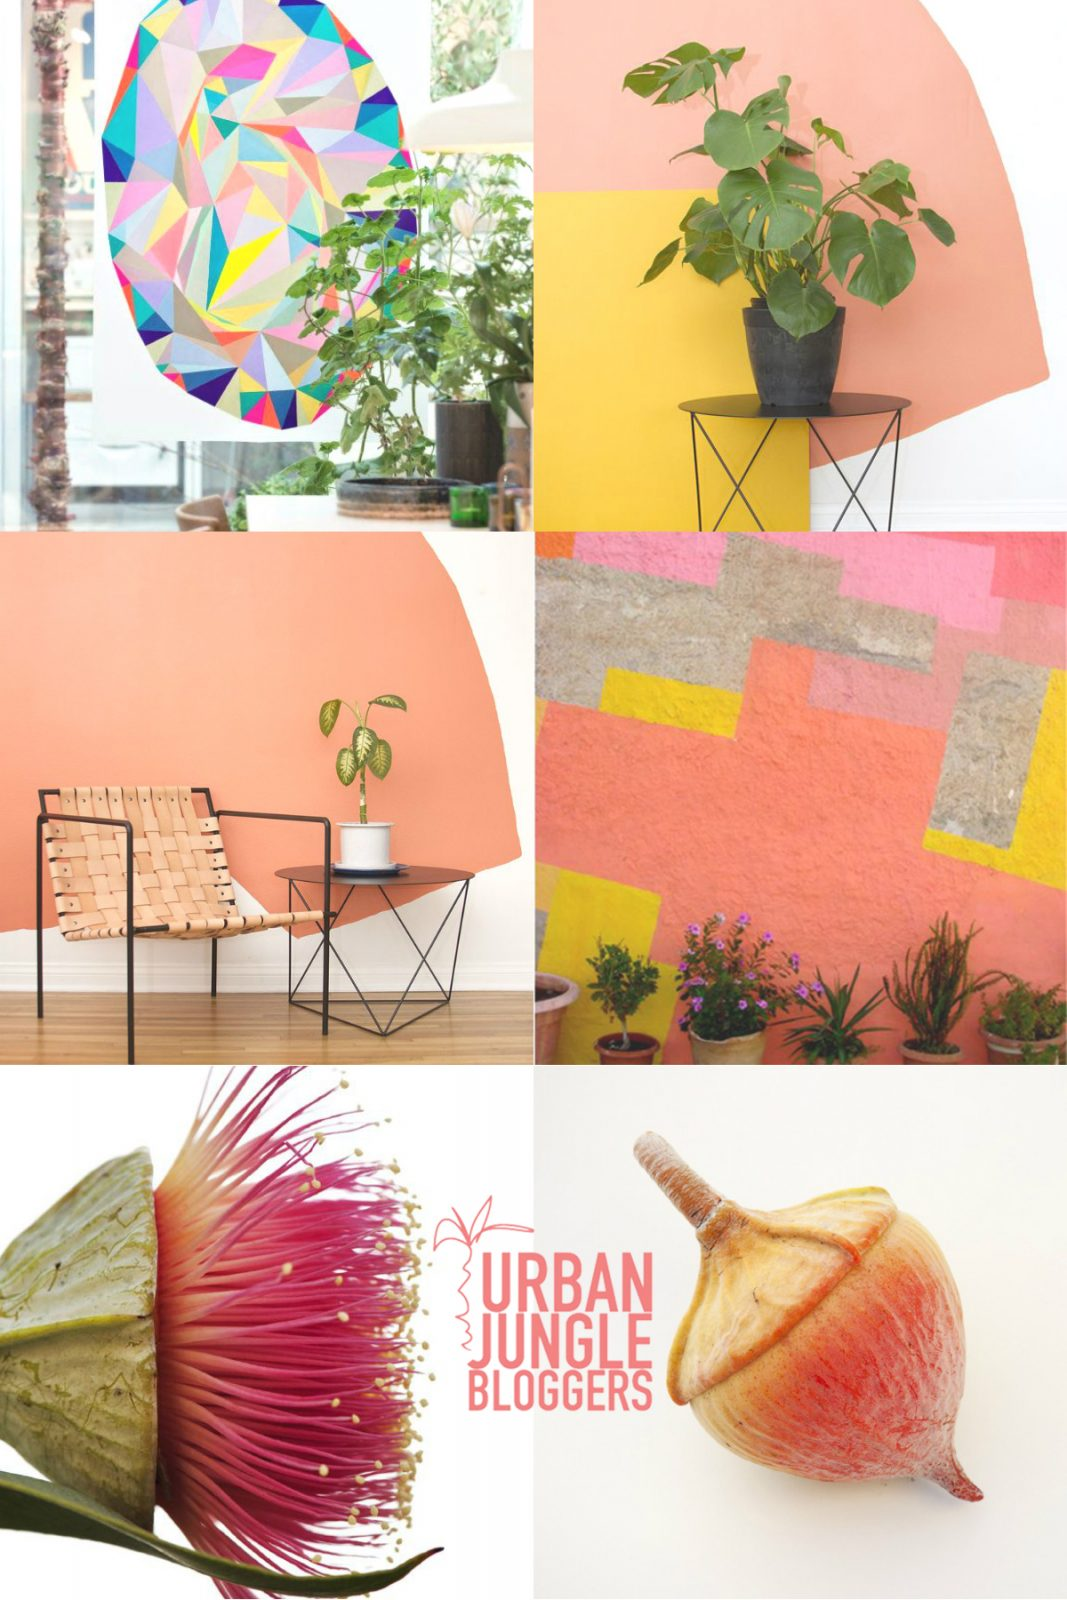 Urban Jungle Bloggers plant color pop